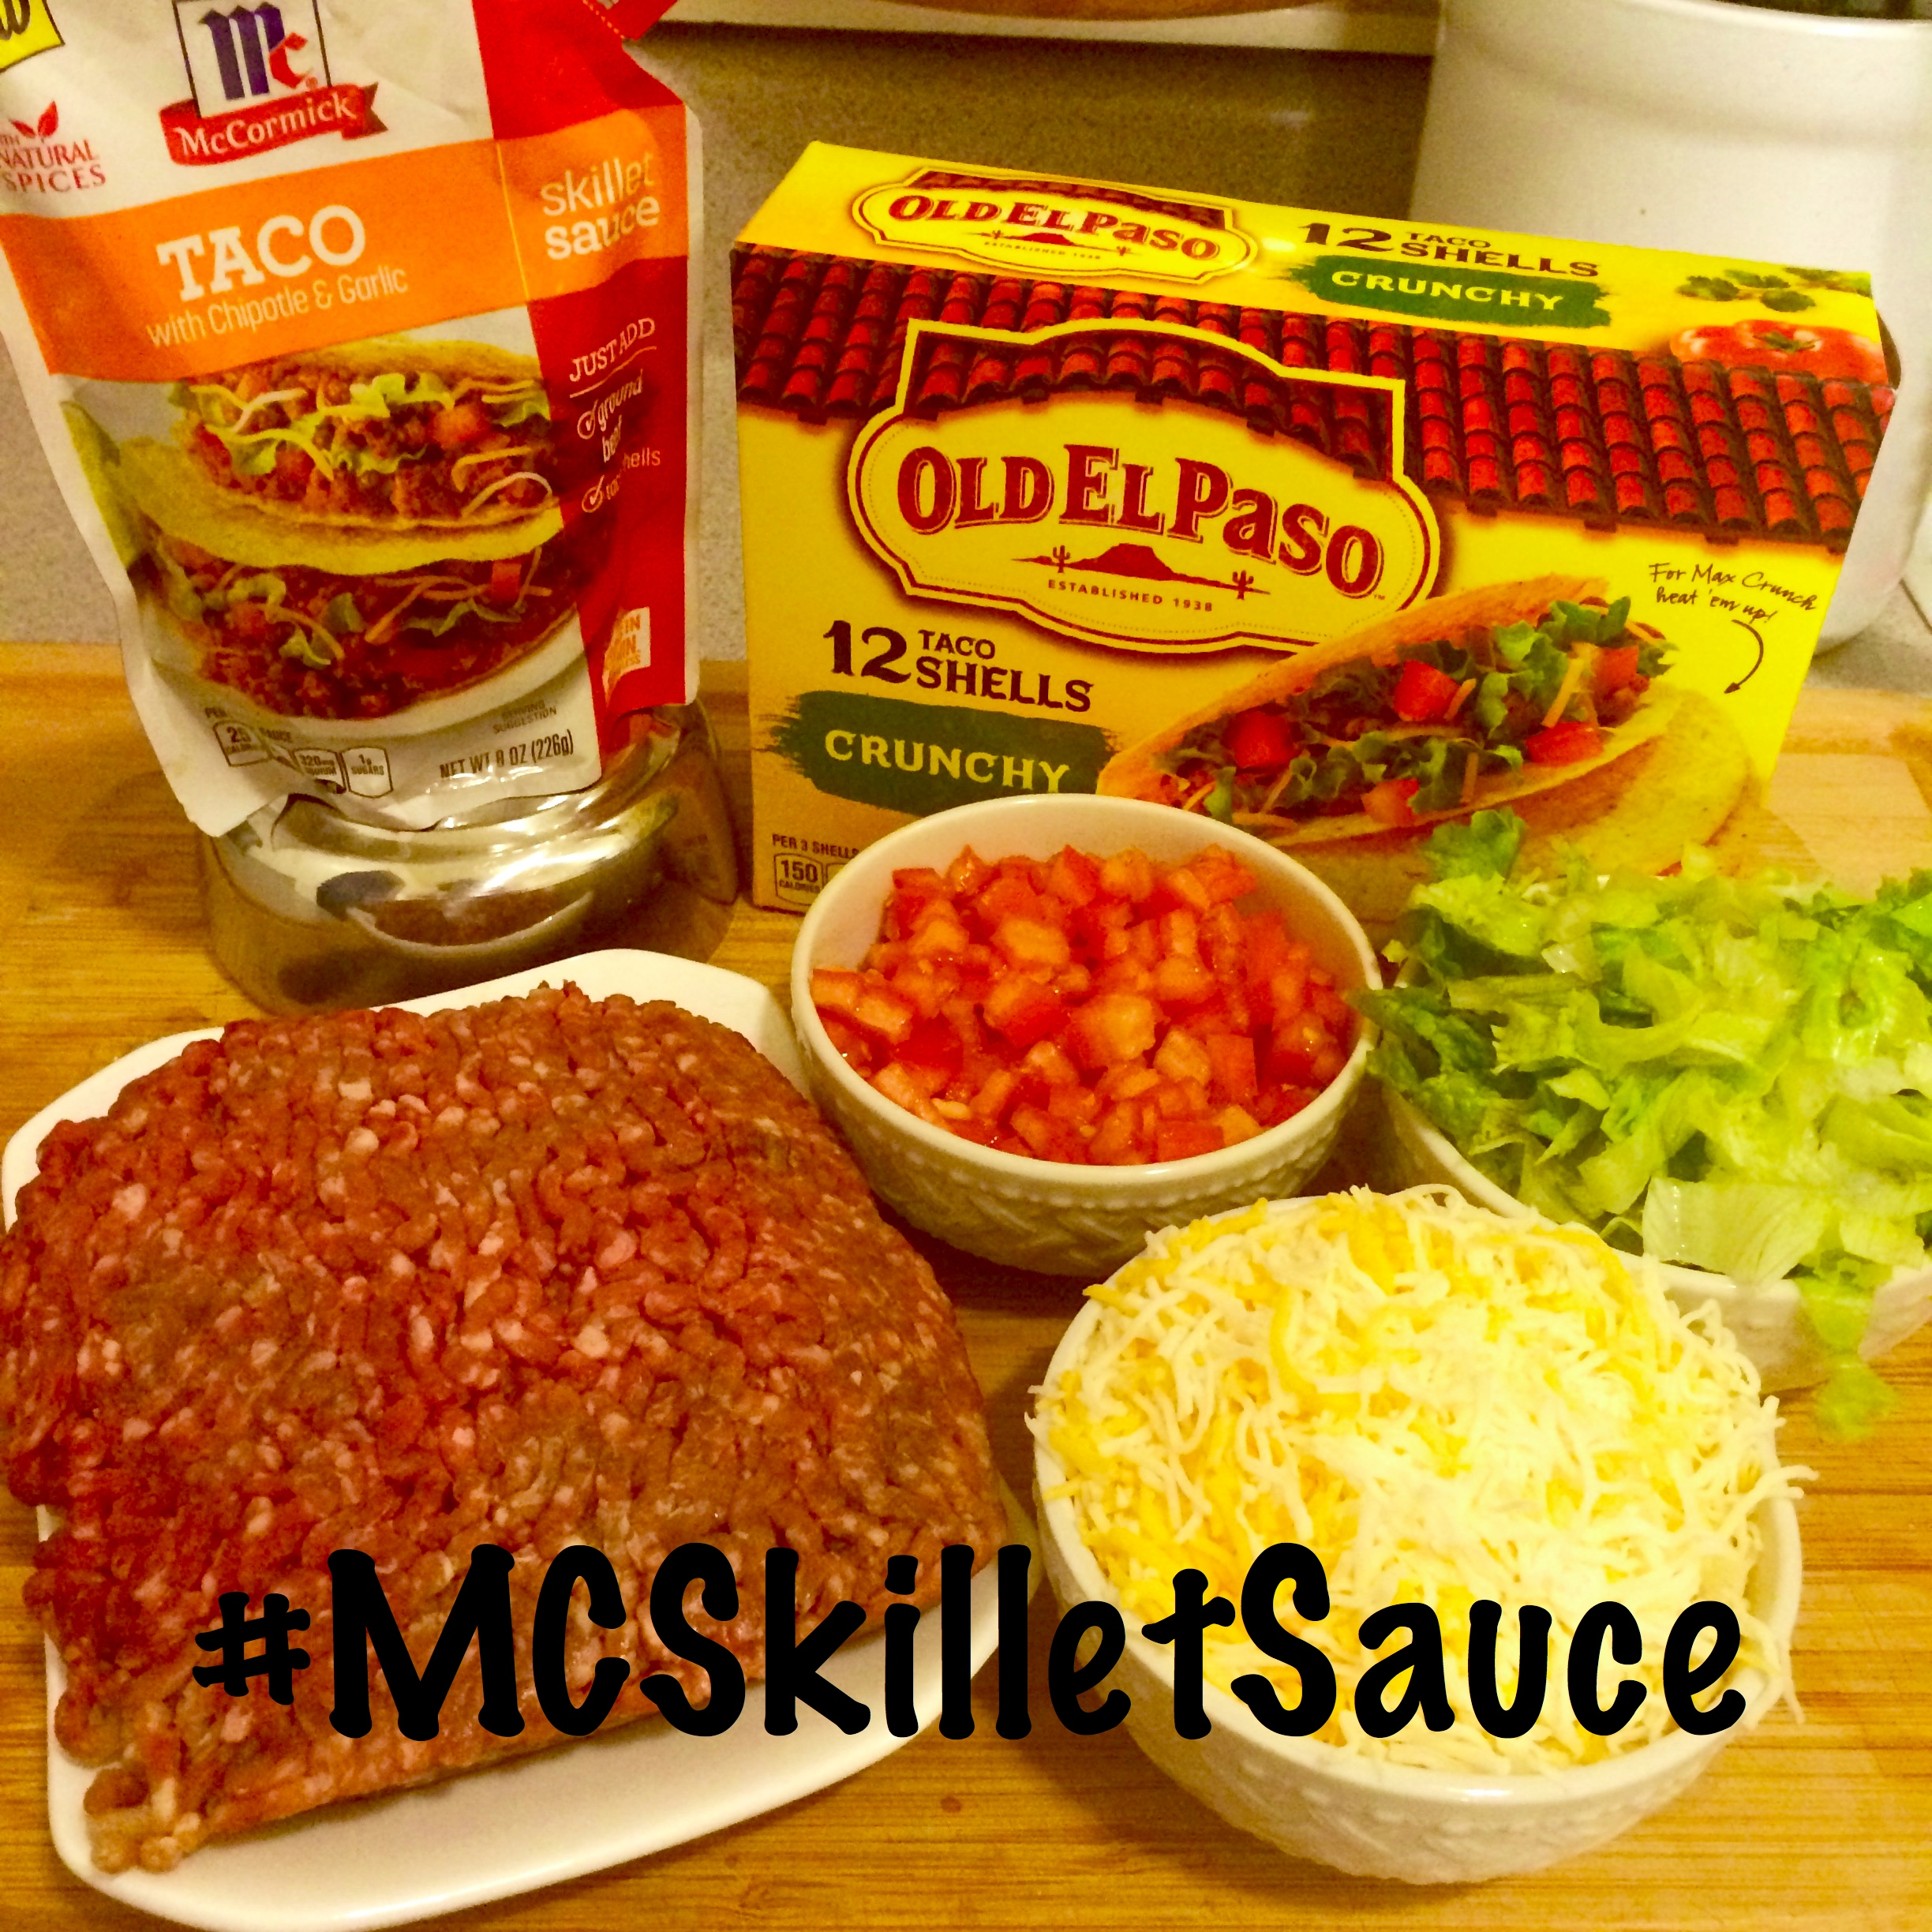 Taco Tuesday! Easy Chipotle & Garlic Tacos with McCormick Skillet Sauces! #MCSkilletSauce